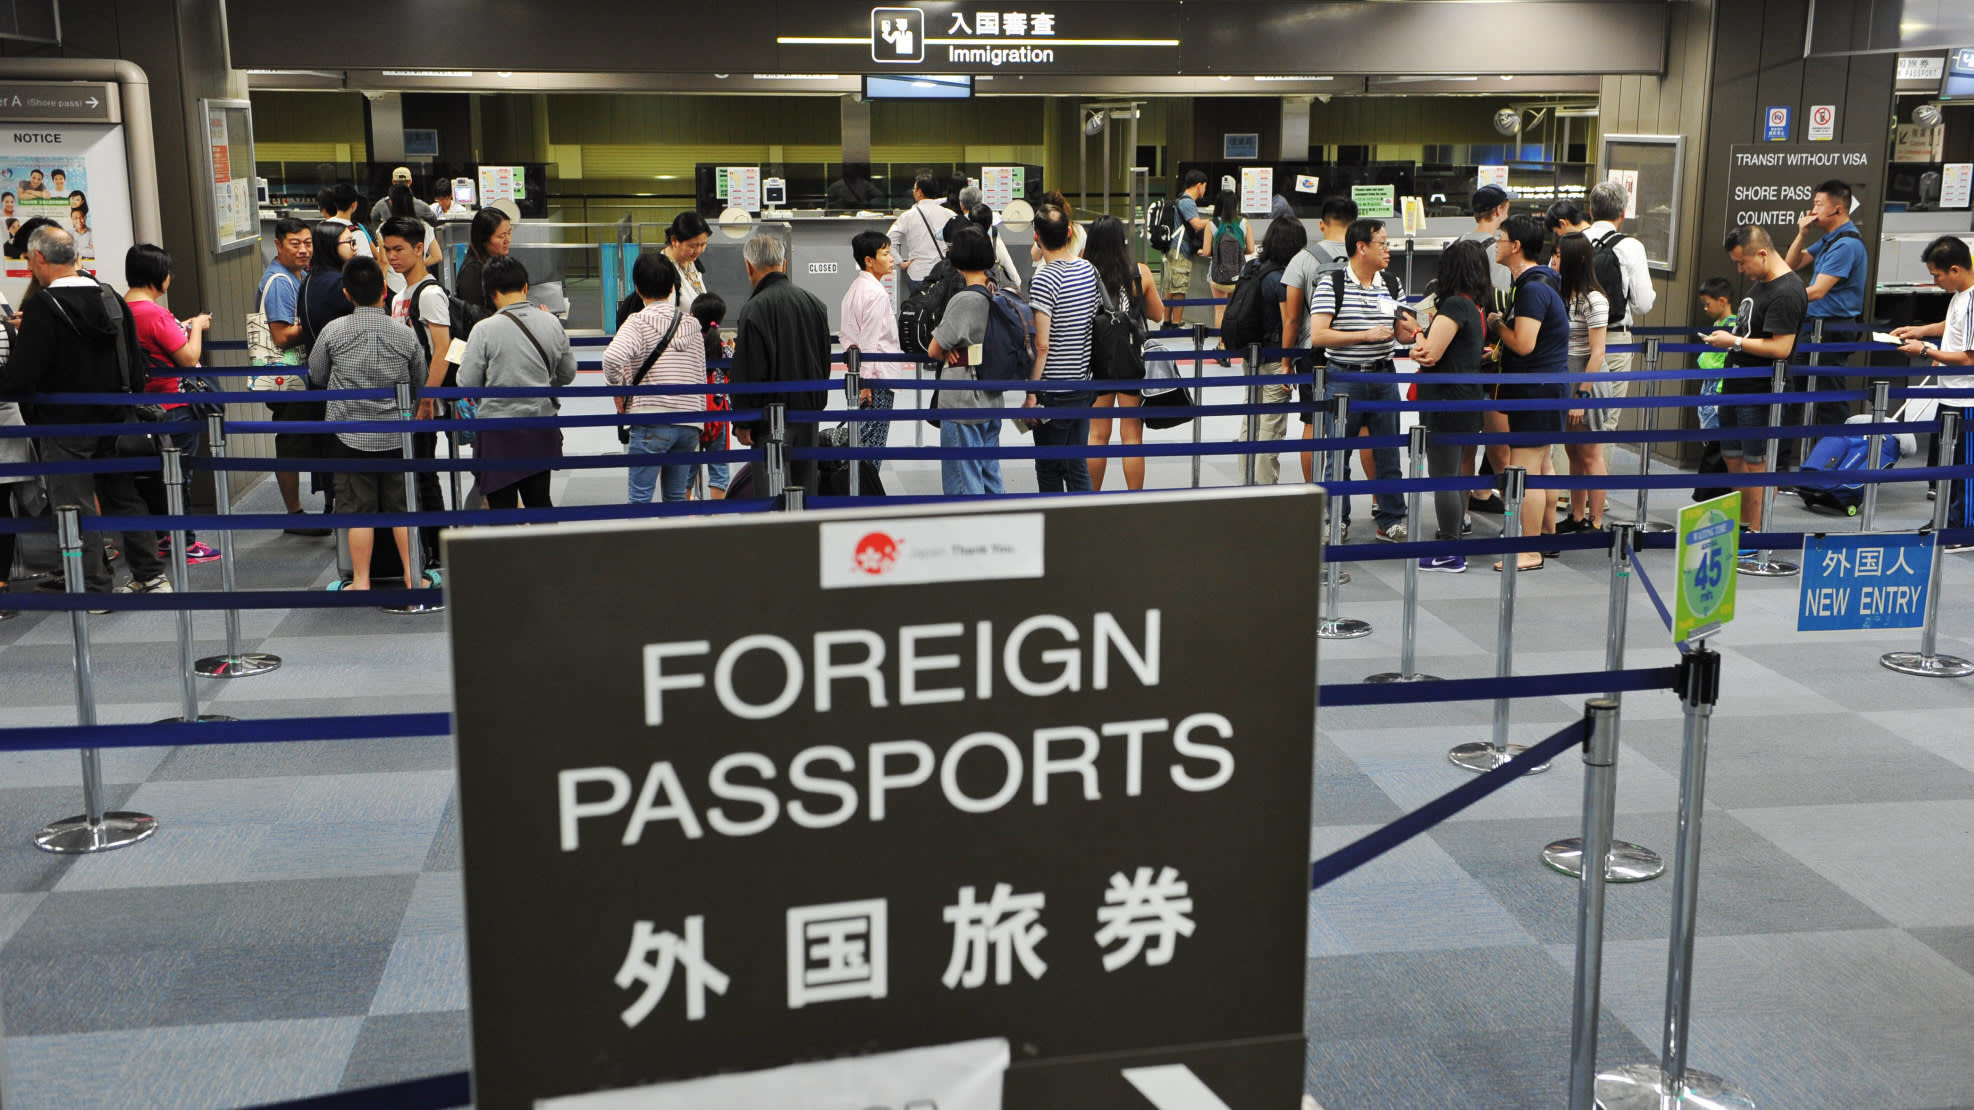 Japan plan to launch electronic visa system in time for Tokyo 2020